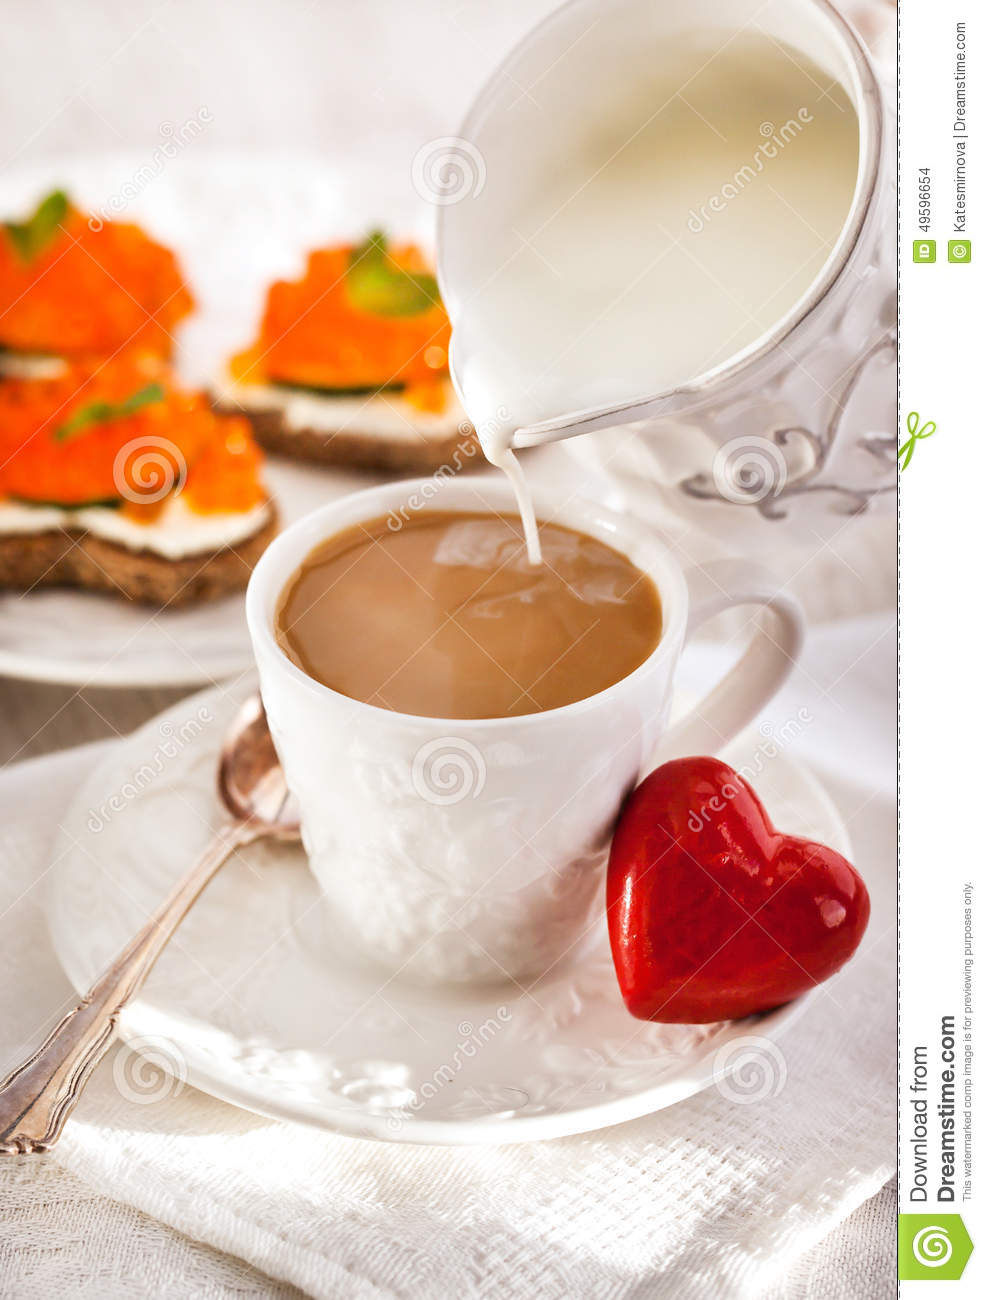 Romantic breakfast with coffee and toasts stock photo for Petit dejeuner en amoureux maison